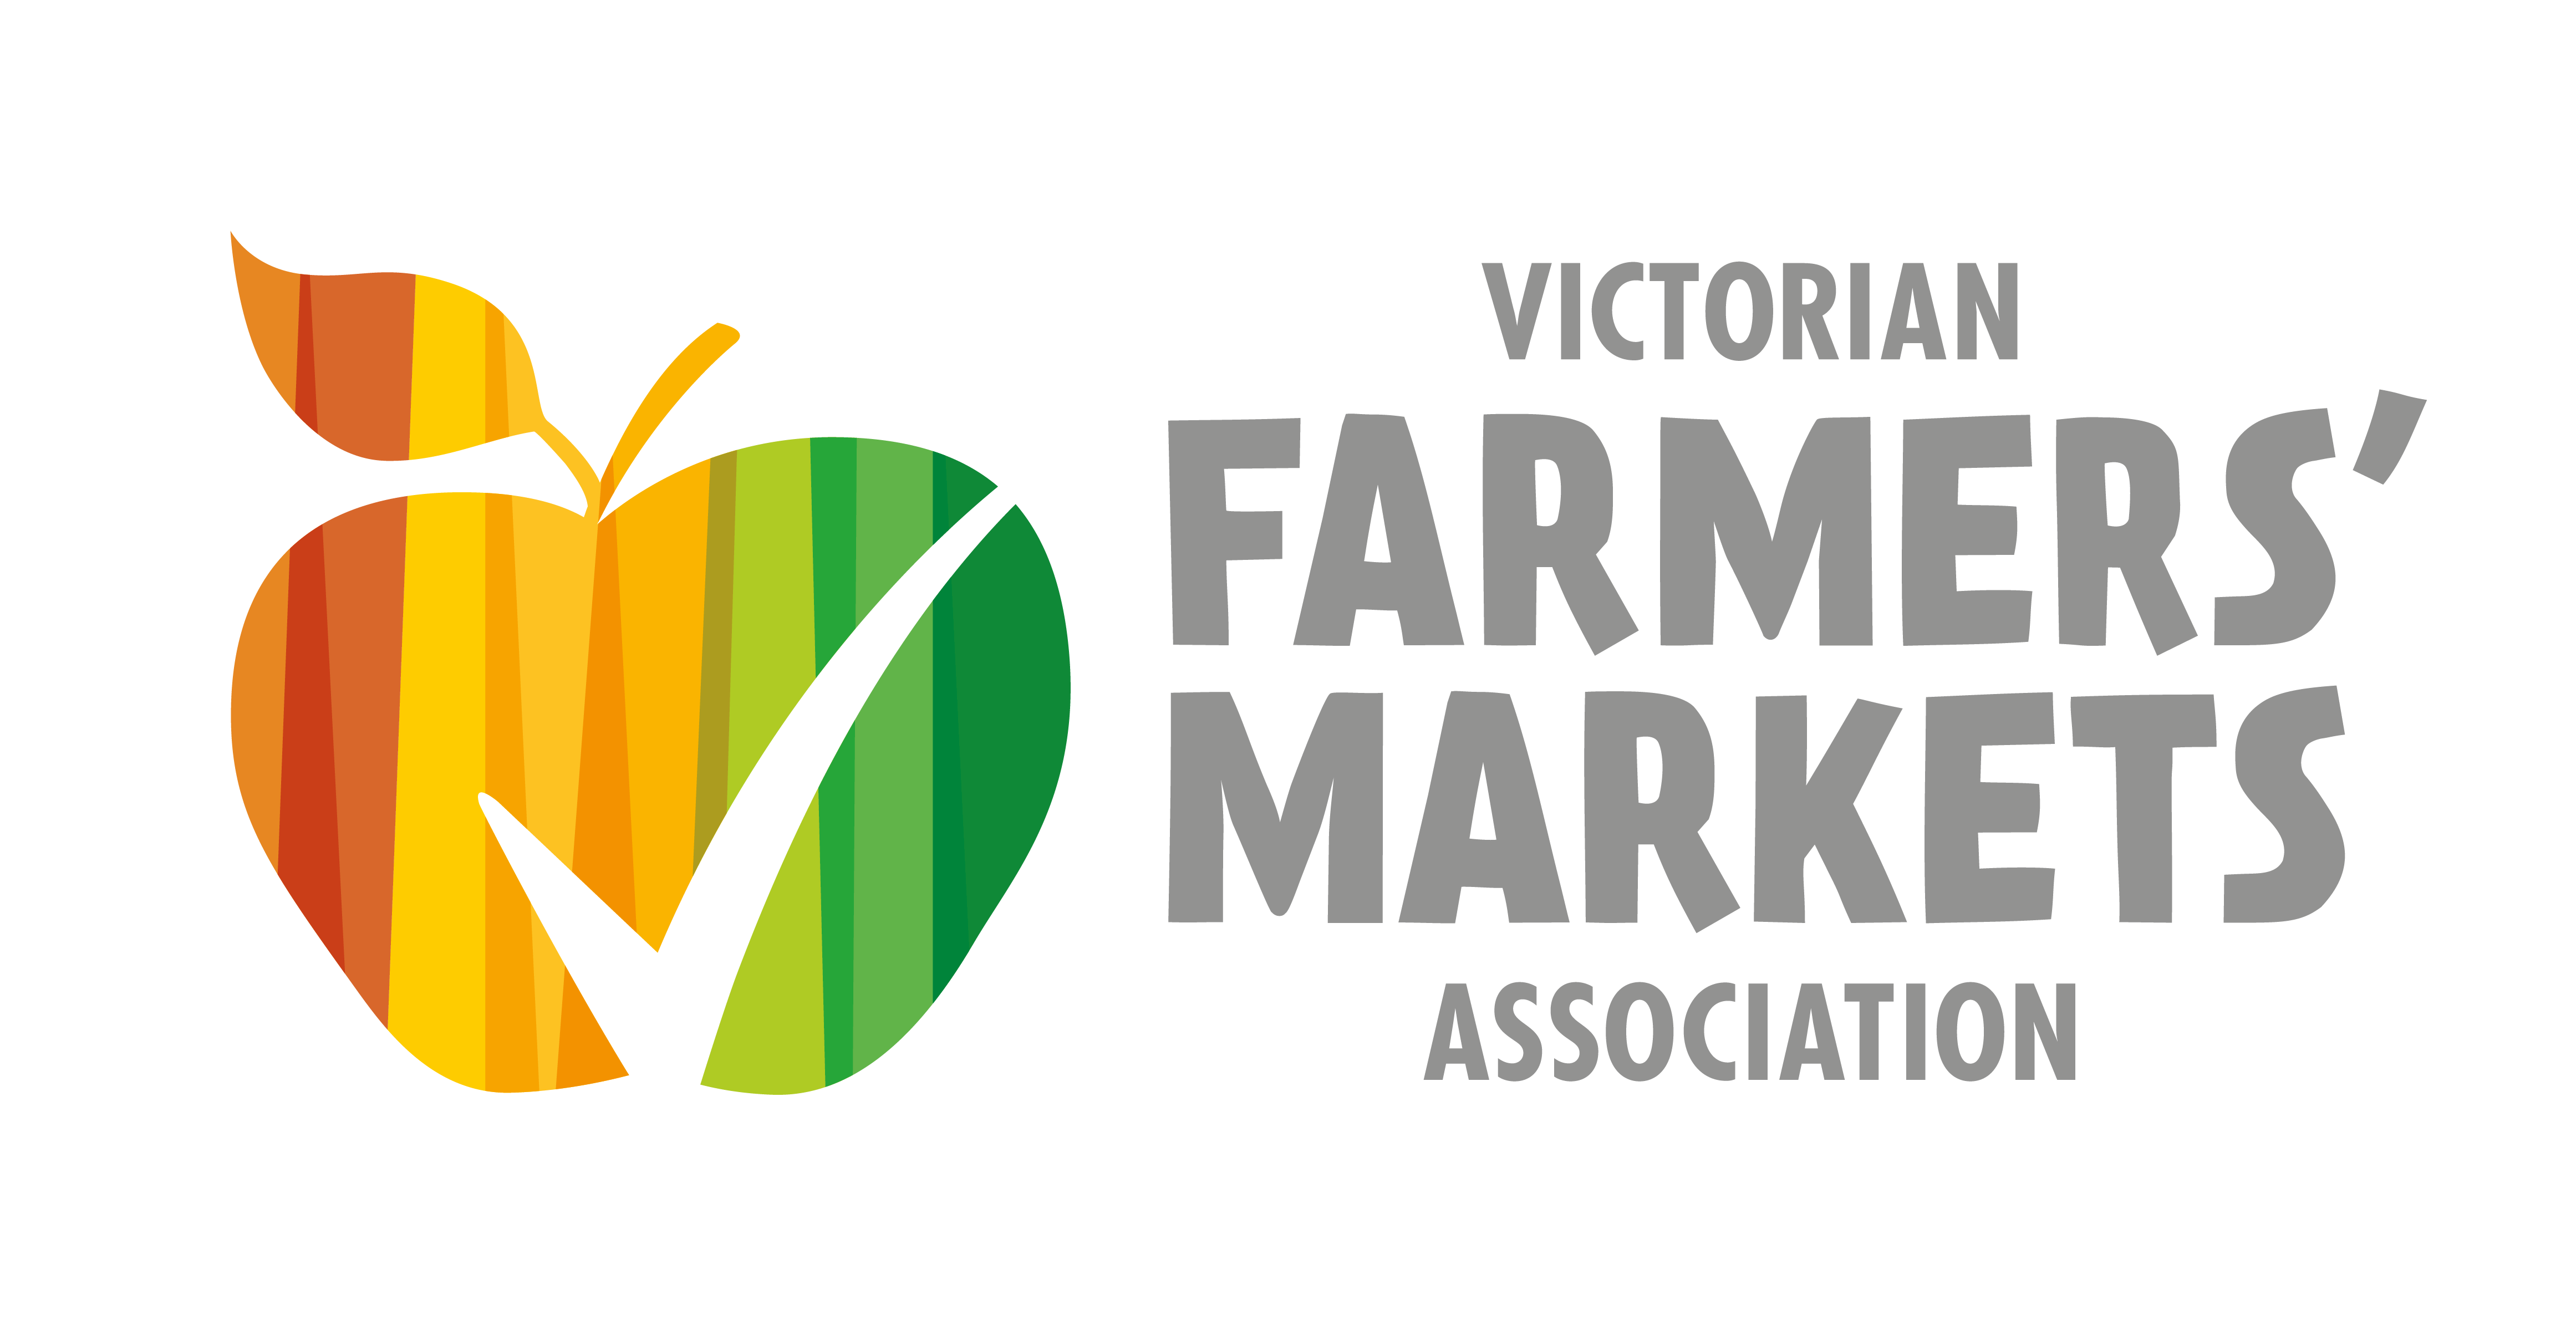 Victorian Farmers Markets Association